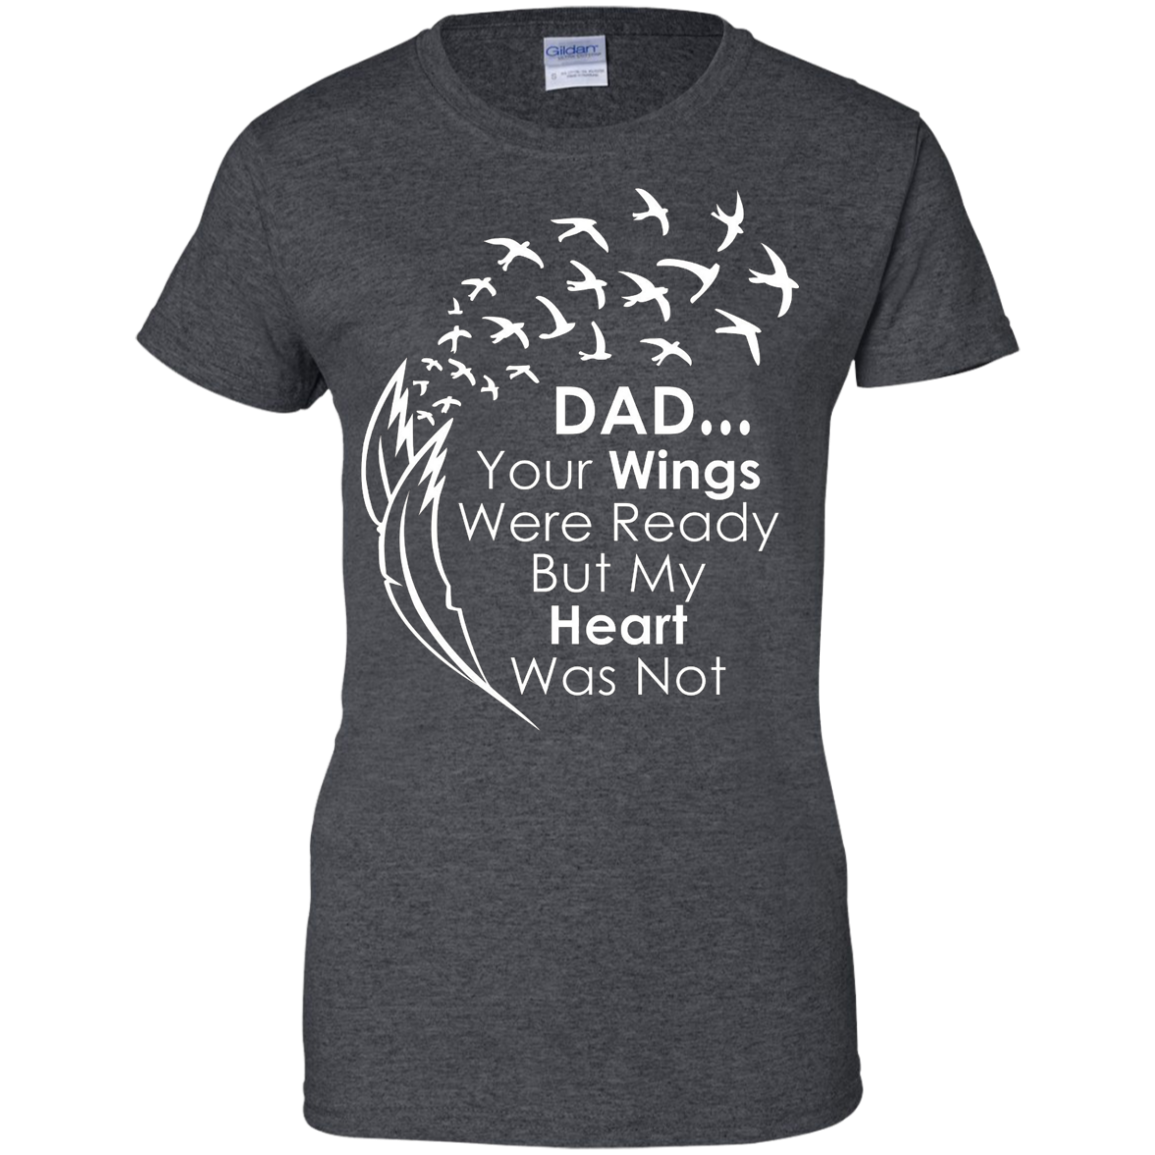 Dad Your Wings Were Ready But My Heart Was Not T Shirt